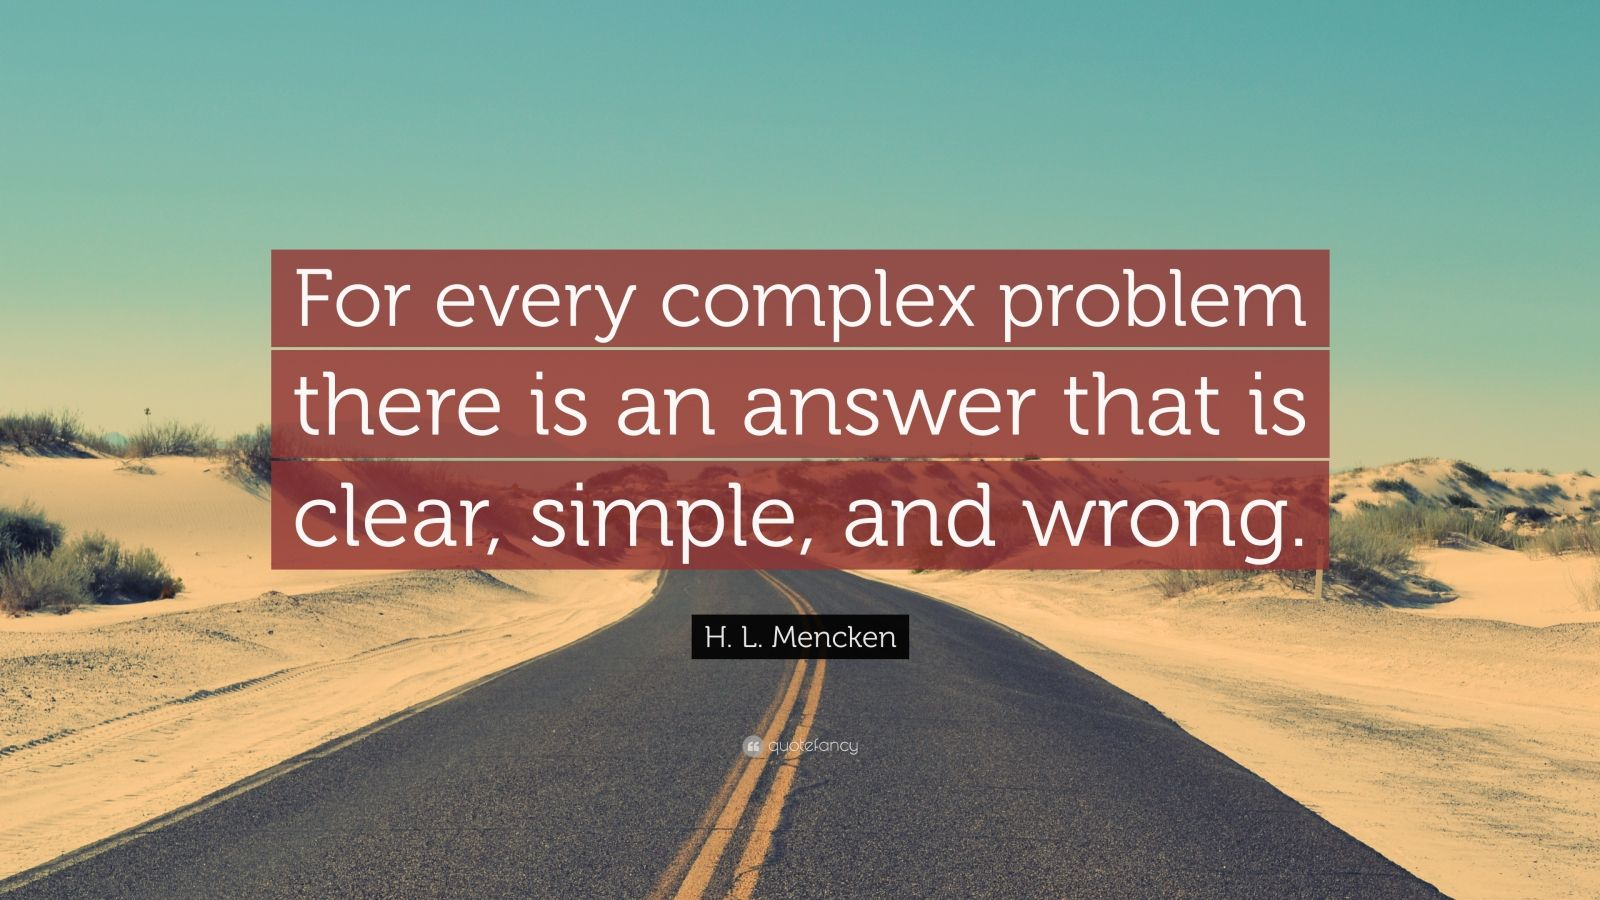 """H. L. Mencken Quote: """"For every complex problem there is an answer that is clear, simple, and wrong."""""""